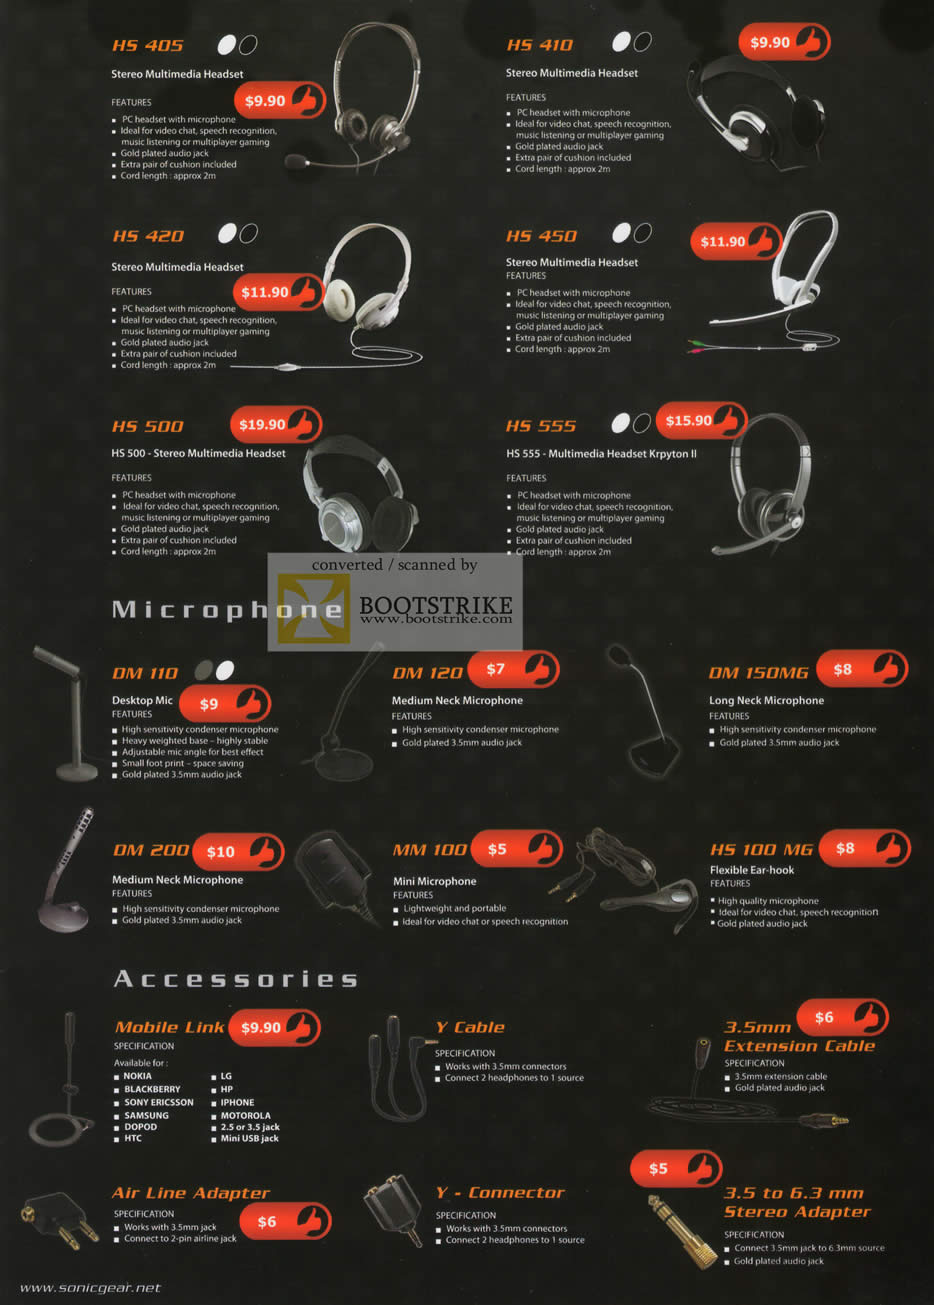 Comex 2010 price list image brochure of Leap Frog Sonic Gear Headset HS405 410 420 450 450 500 555 Microphone DM MM HS Y Cable Connector Extension